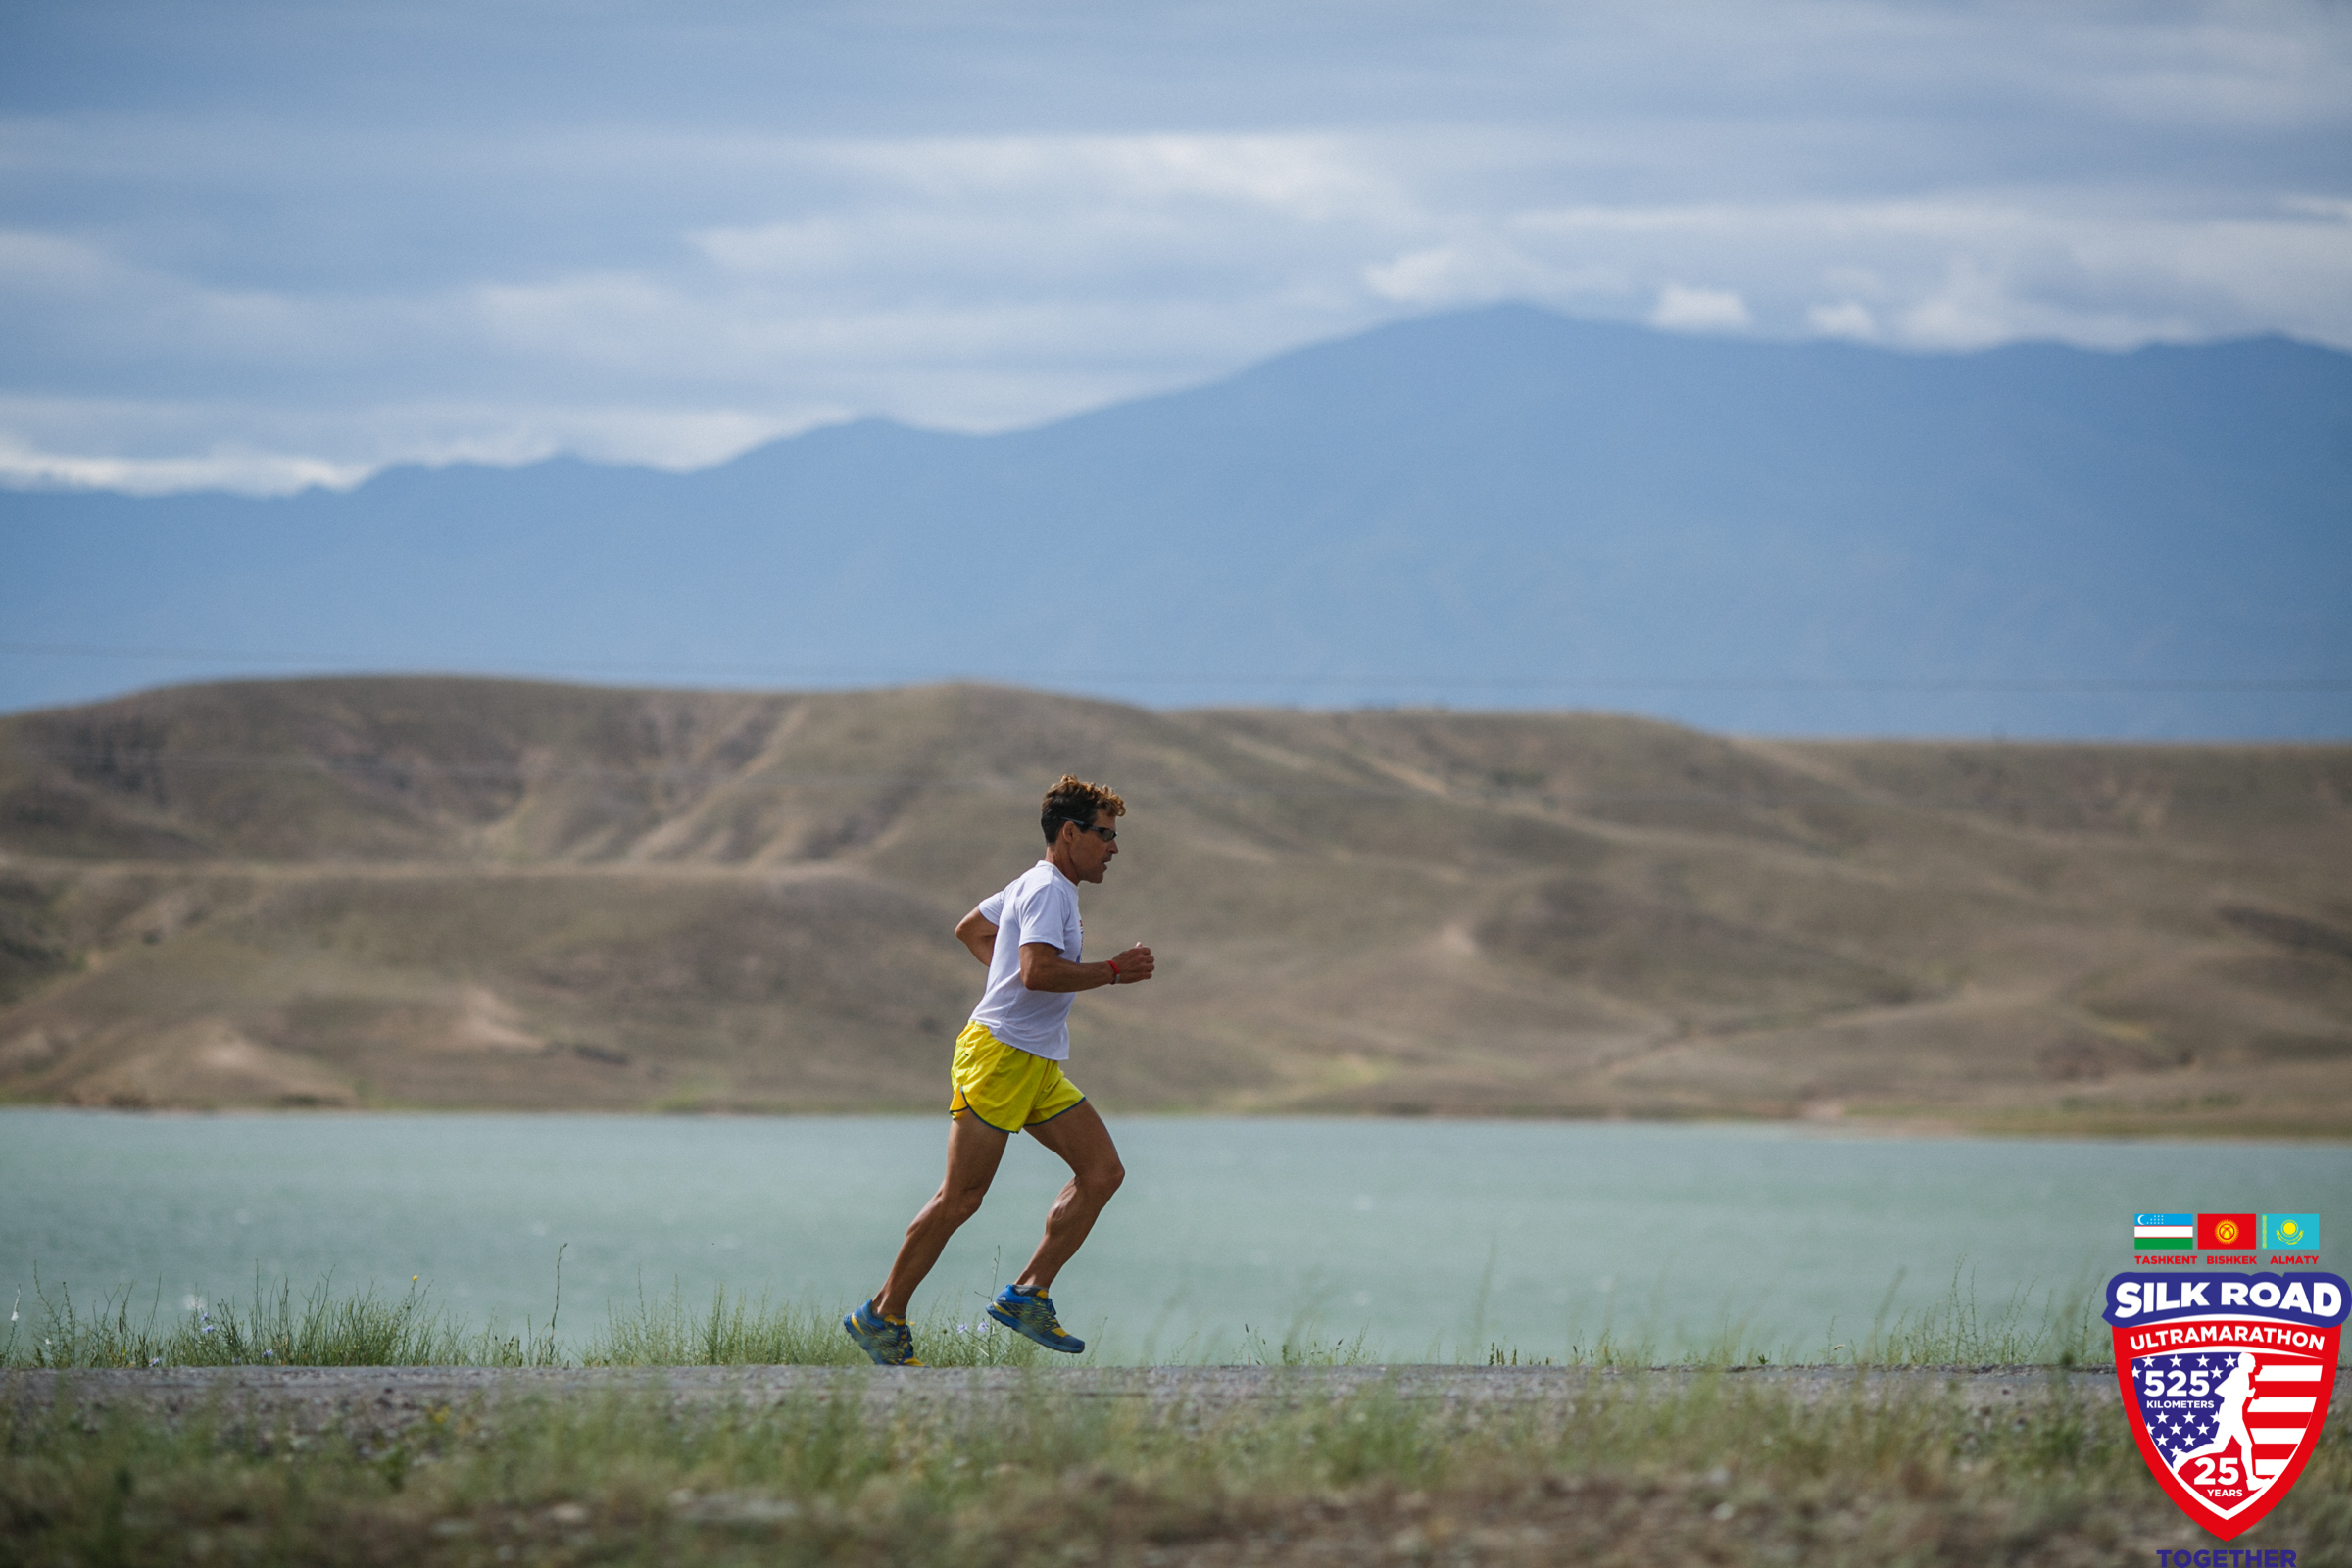 Dean running on road with mountains in the background